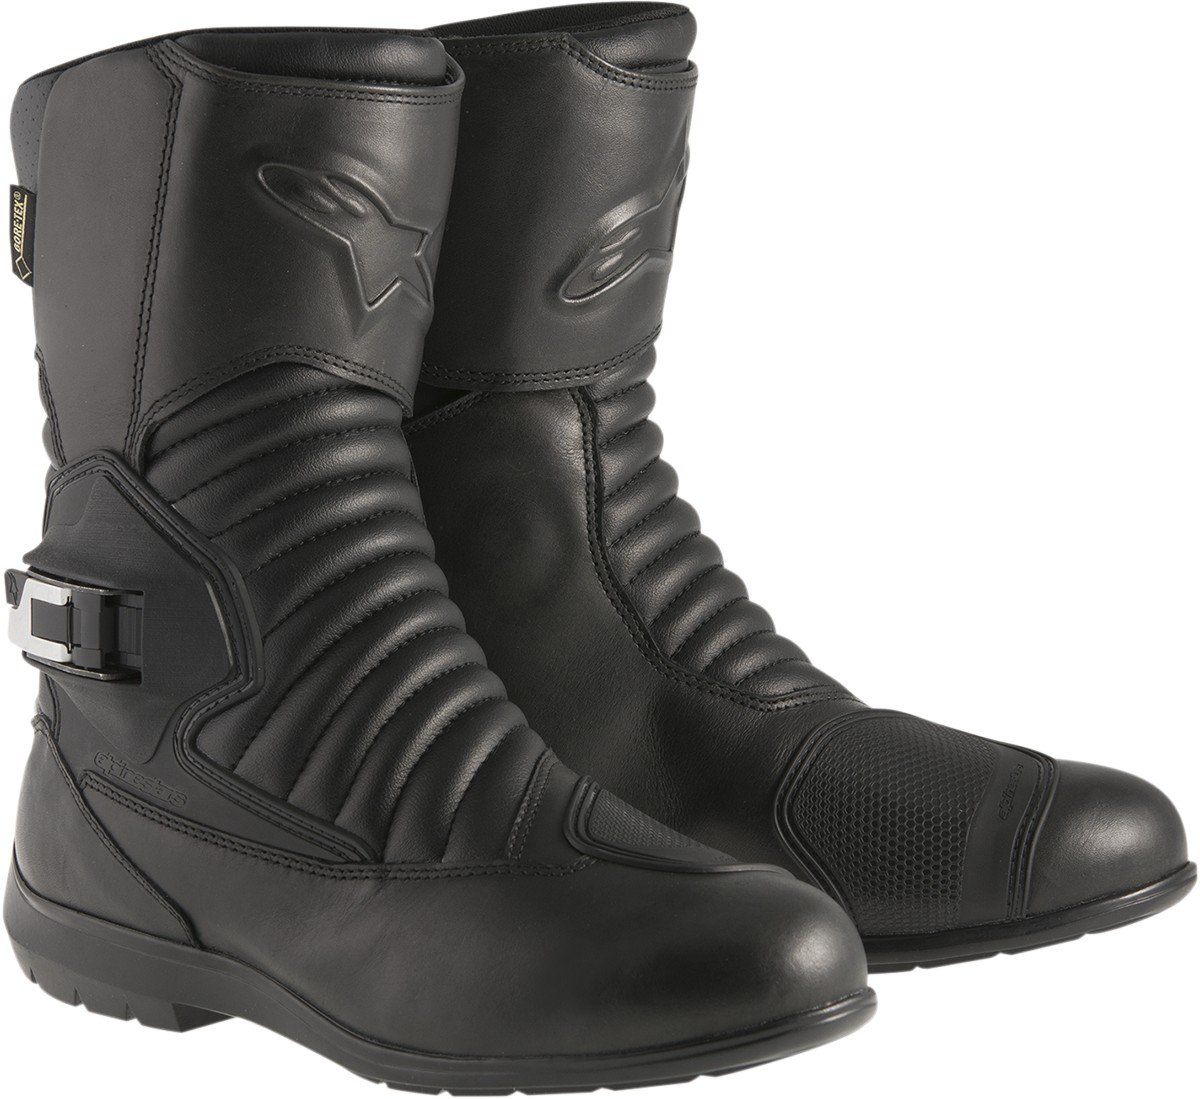 Alpinestars Monofuse Gore-Tex Mens Tech Touring Motorcycle Boots Black, EU Size 37